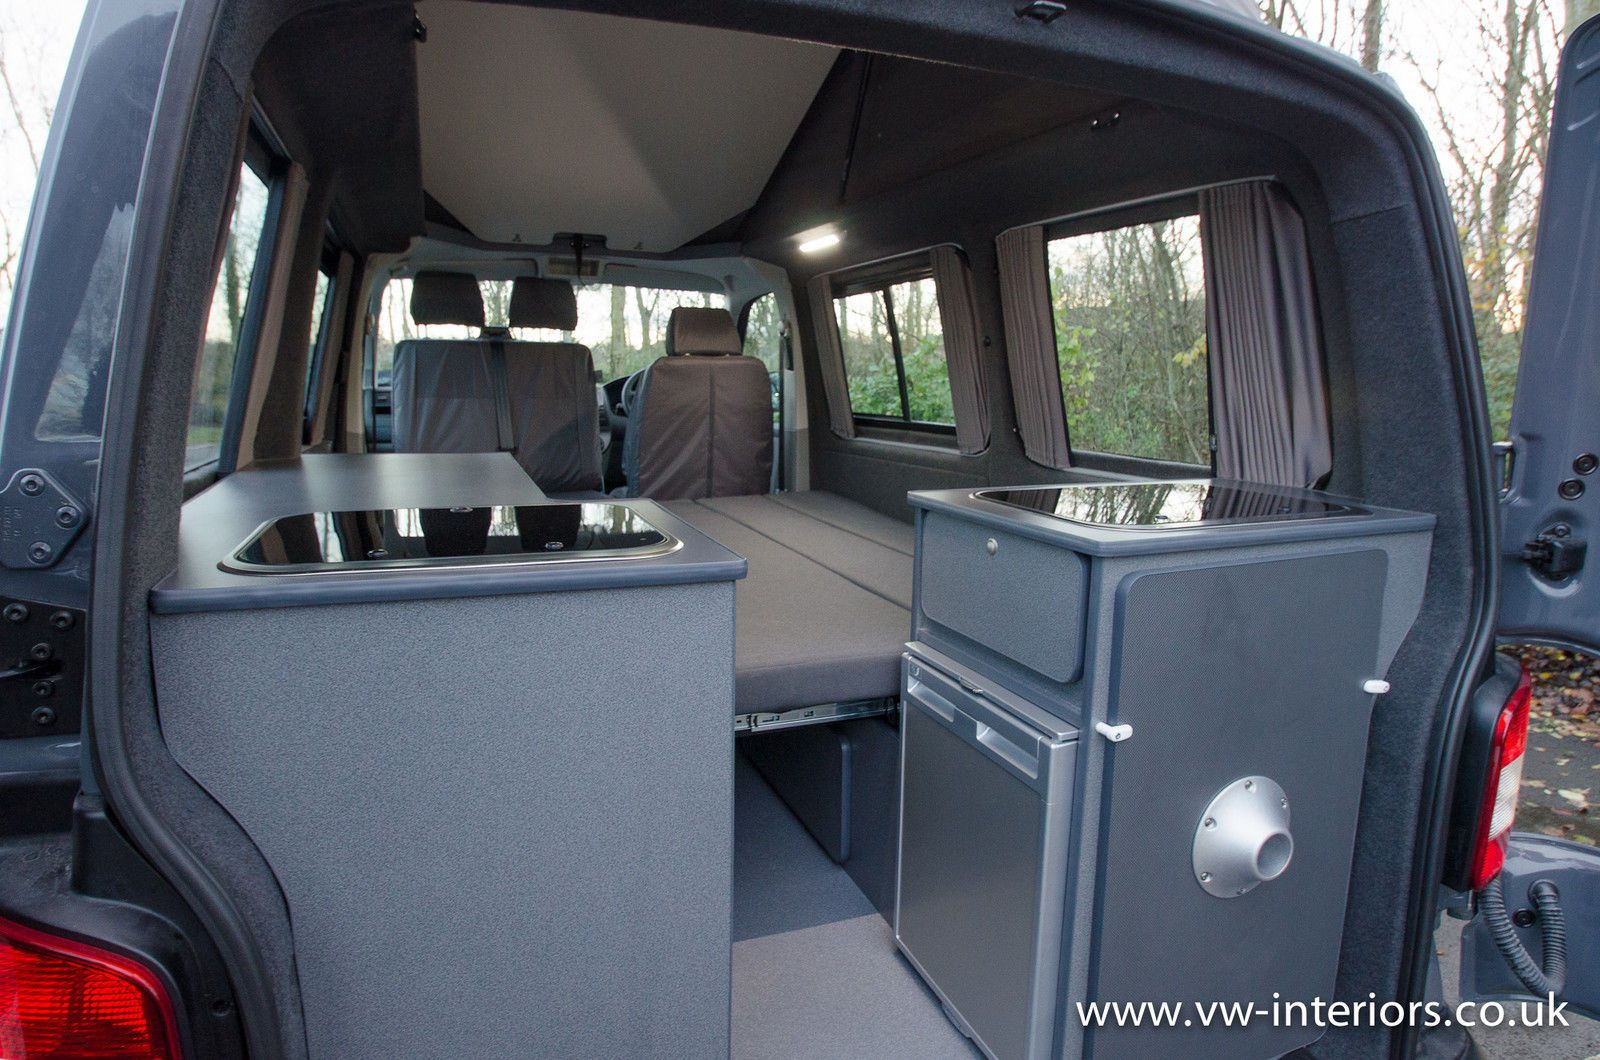 details about vw camper campervan interior vw conversion. Black Bedroom Furniture Sets. Home Design Ideas